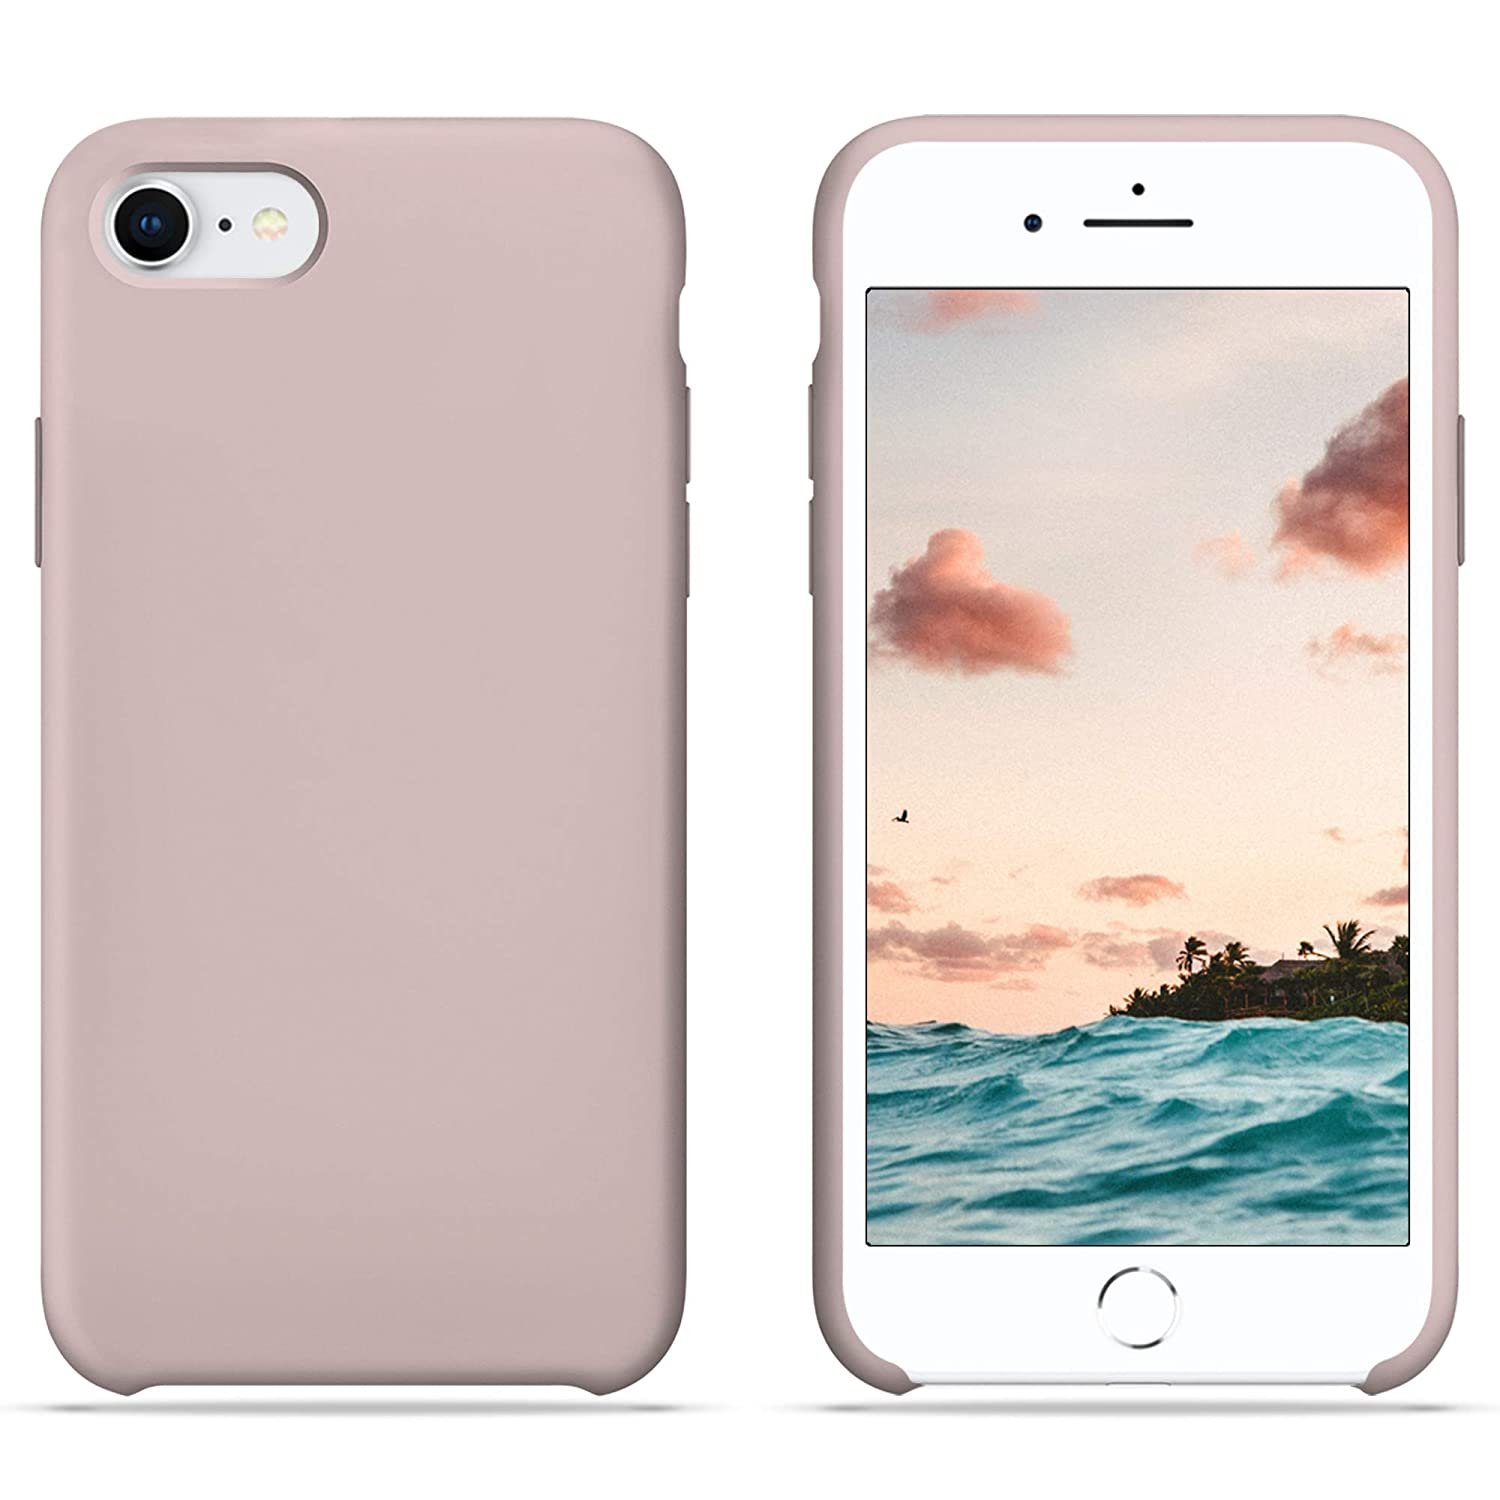 official photos 34ffc 379cb iPhone 6S Case, iPhone 6 Case, HONUA [BacktoBasics] Liquid Silicone Case  Inner Silky Soft-Touch Microfiber Cloth Lining Gel Rubber Case for Apple ...